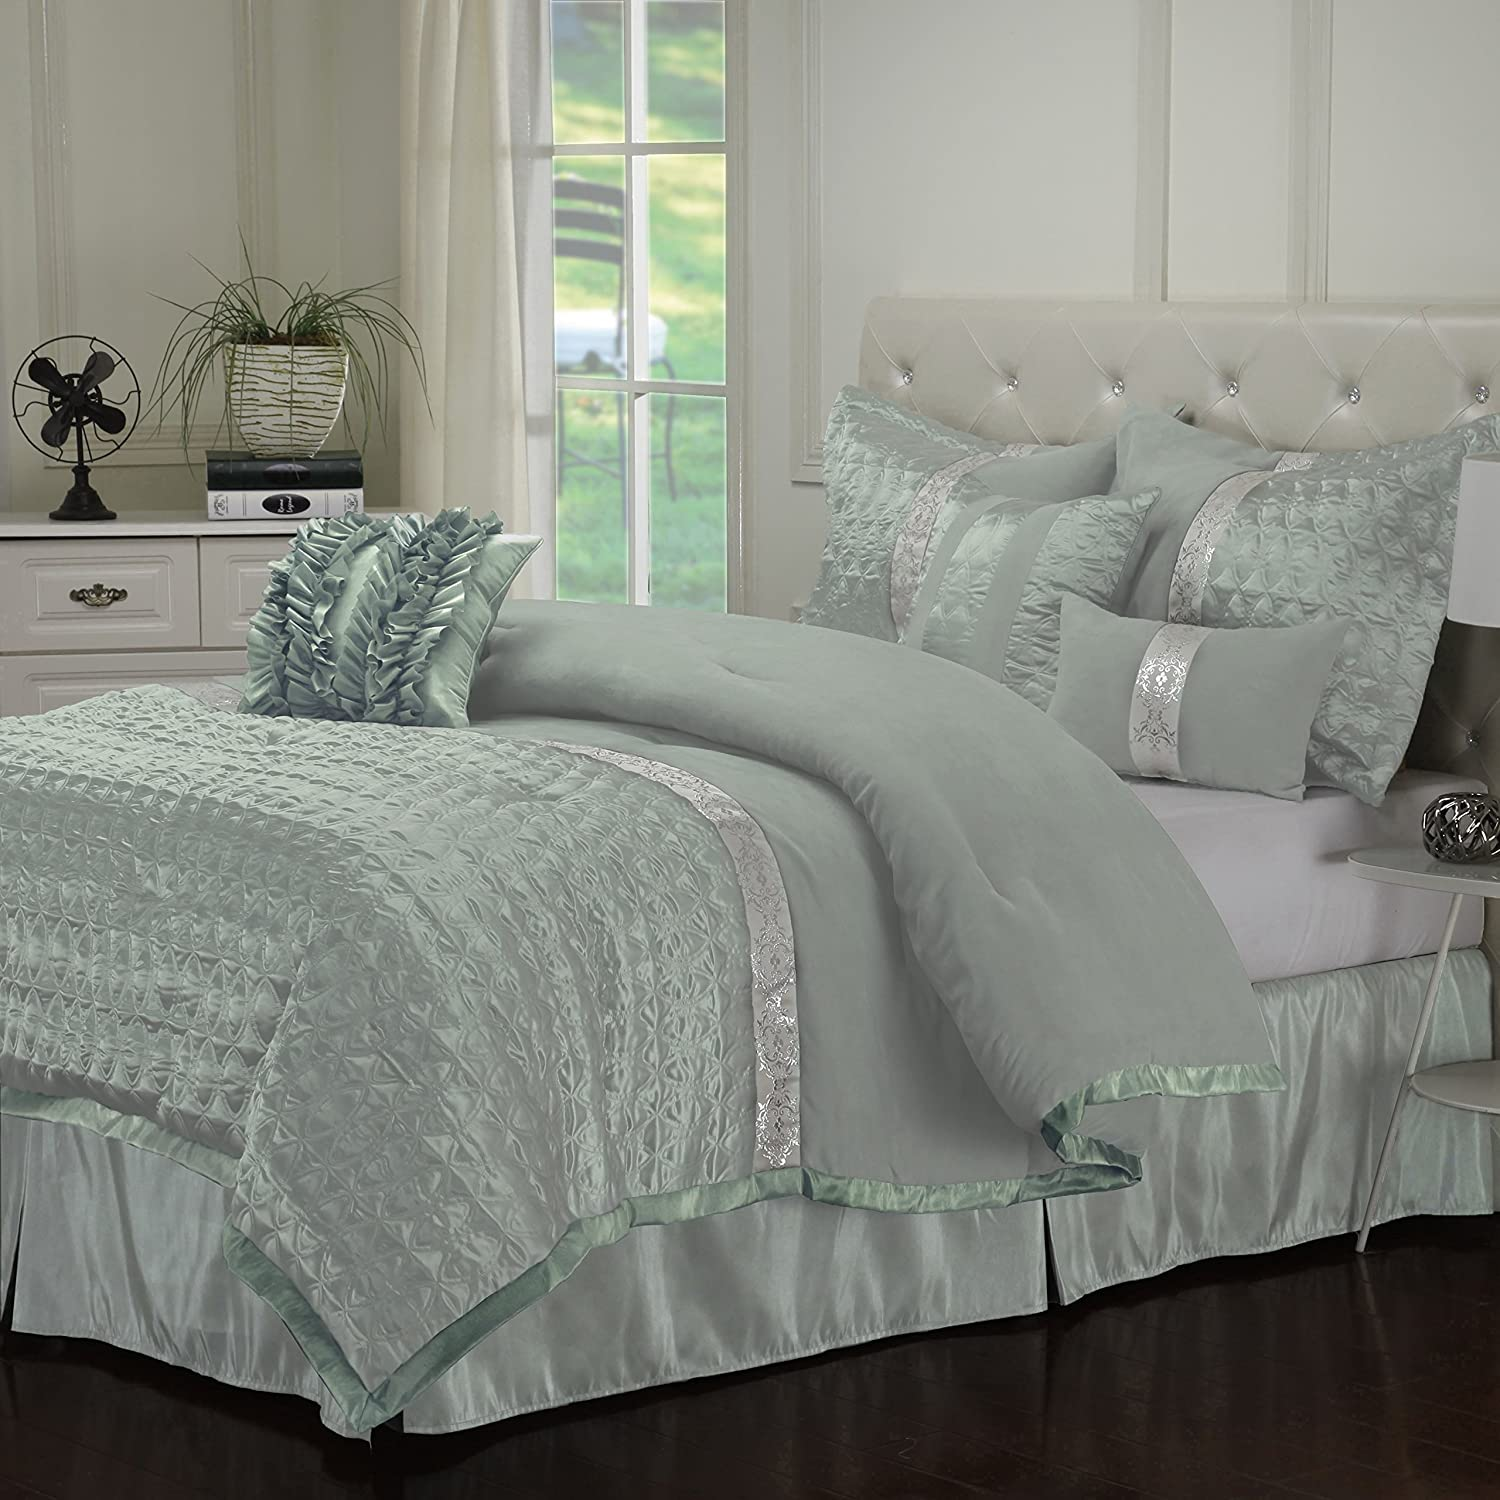 on piece the pin overstock comforter teen laila shopping design best id set prices sets intelligent designs green mint